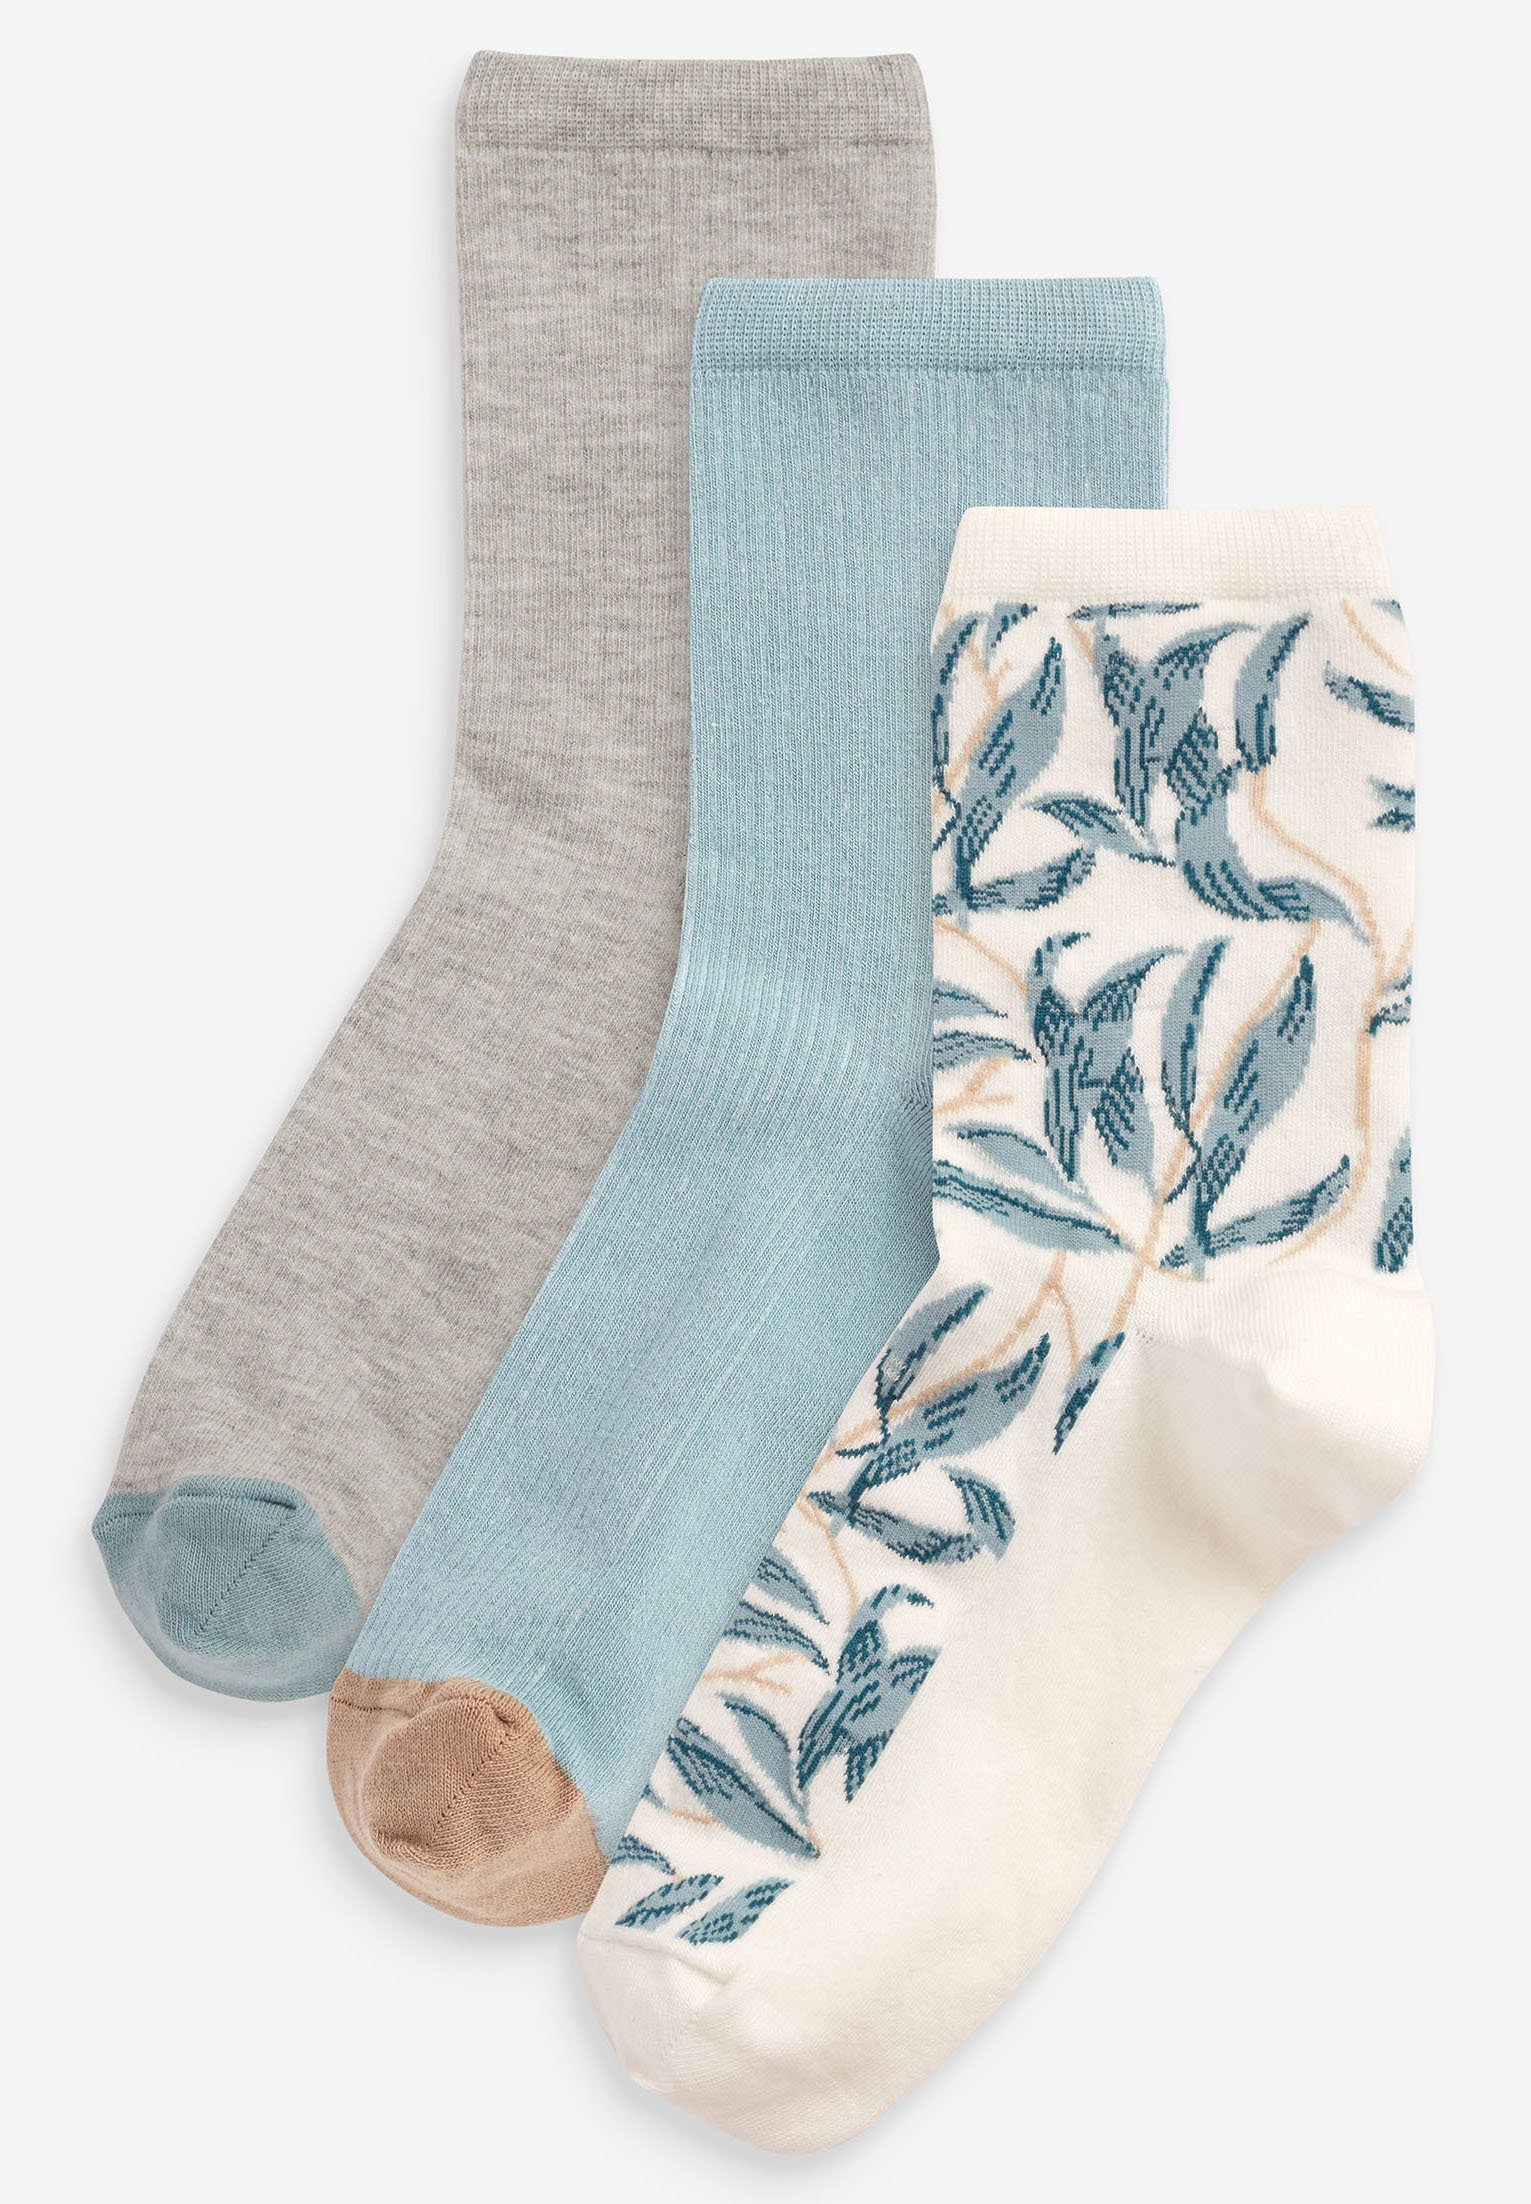 Femme MORRIS & CO. AT NEXT PRINT ANKLE SOCKS 3 PACK - Chaussettes